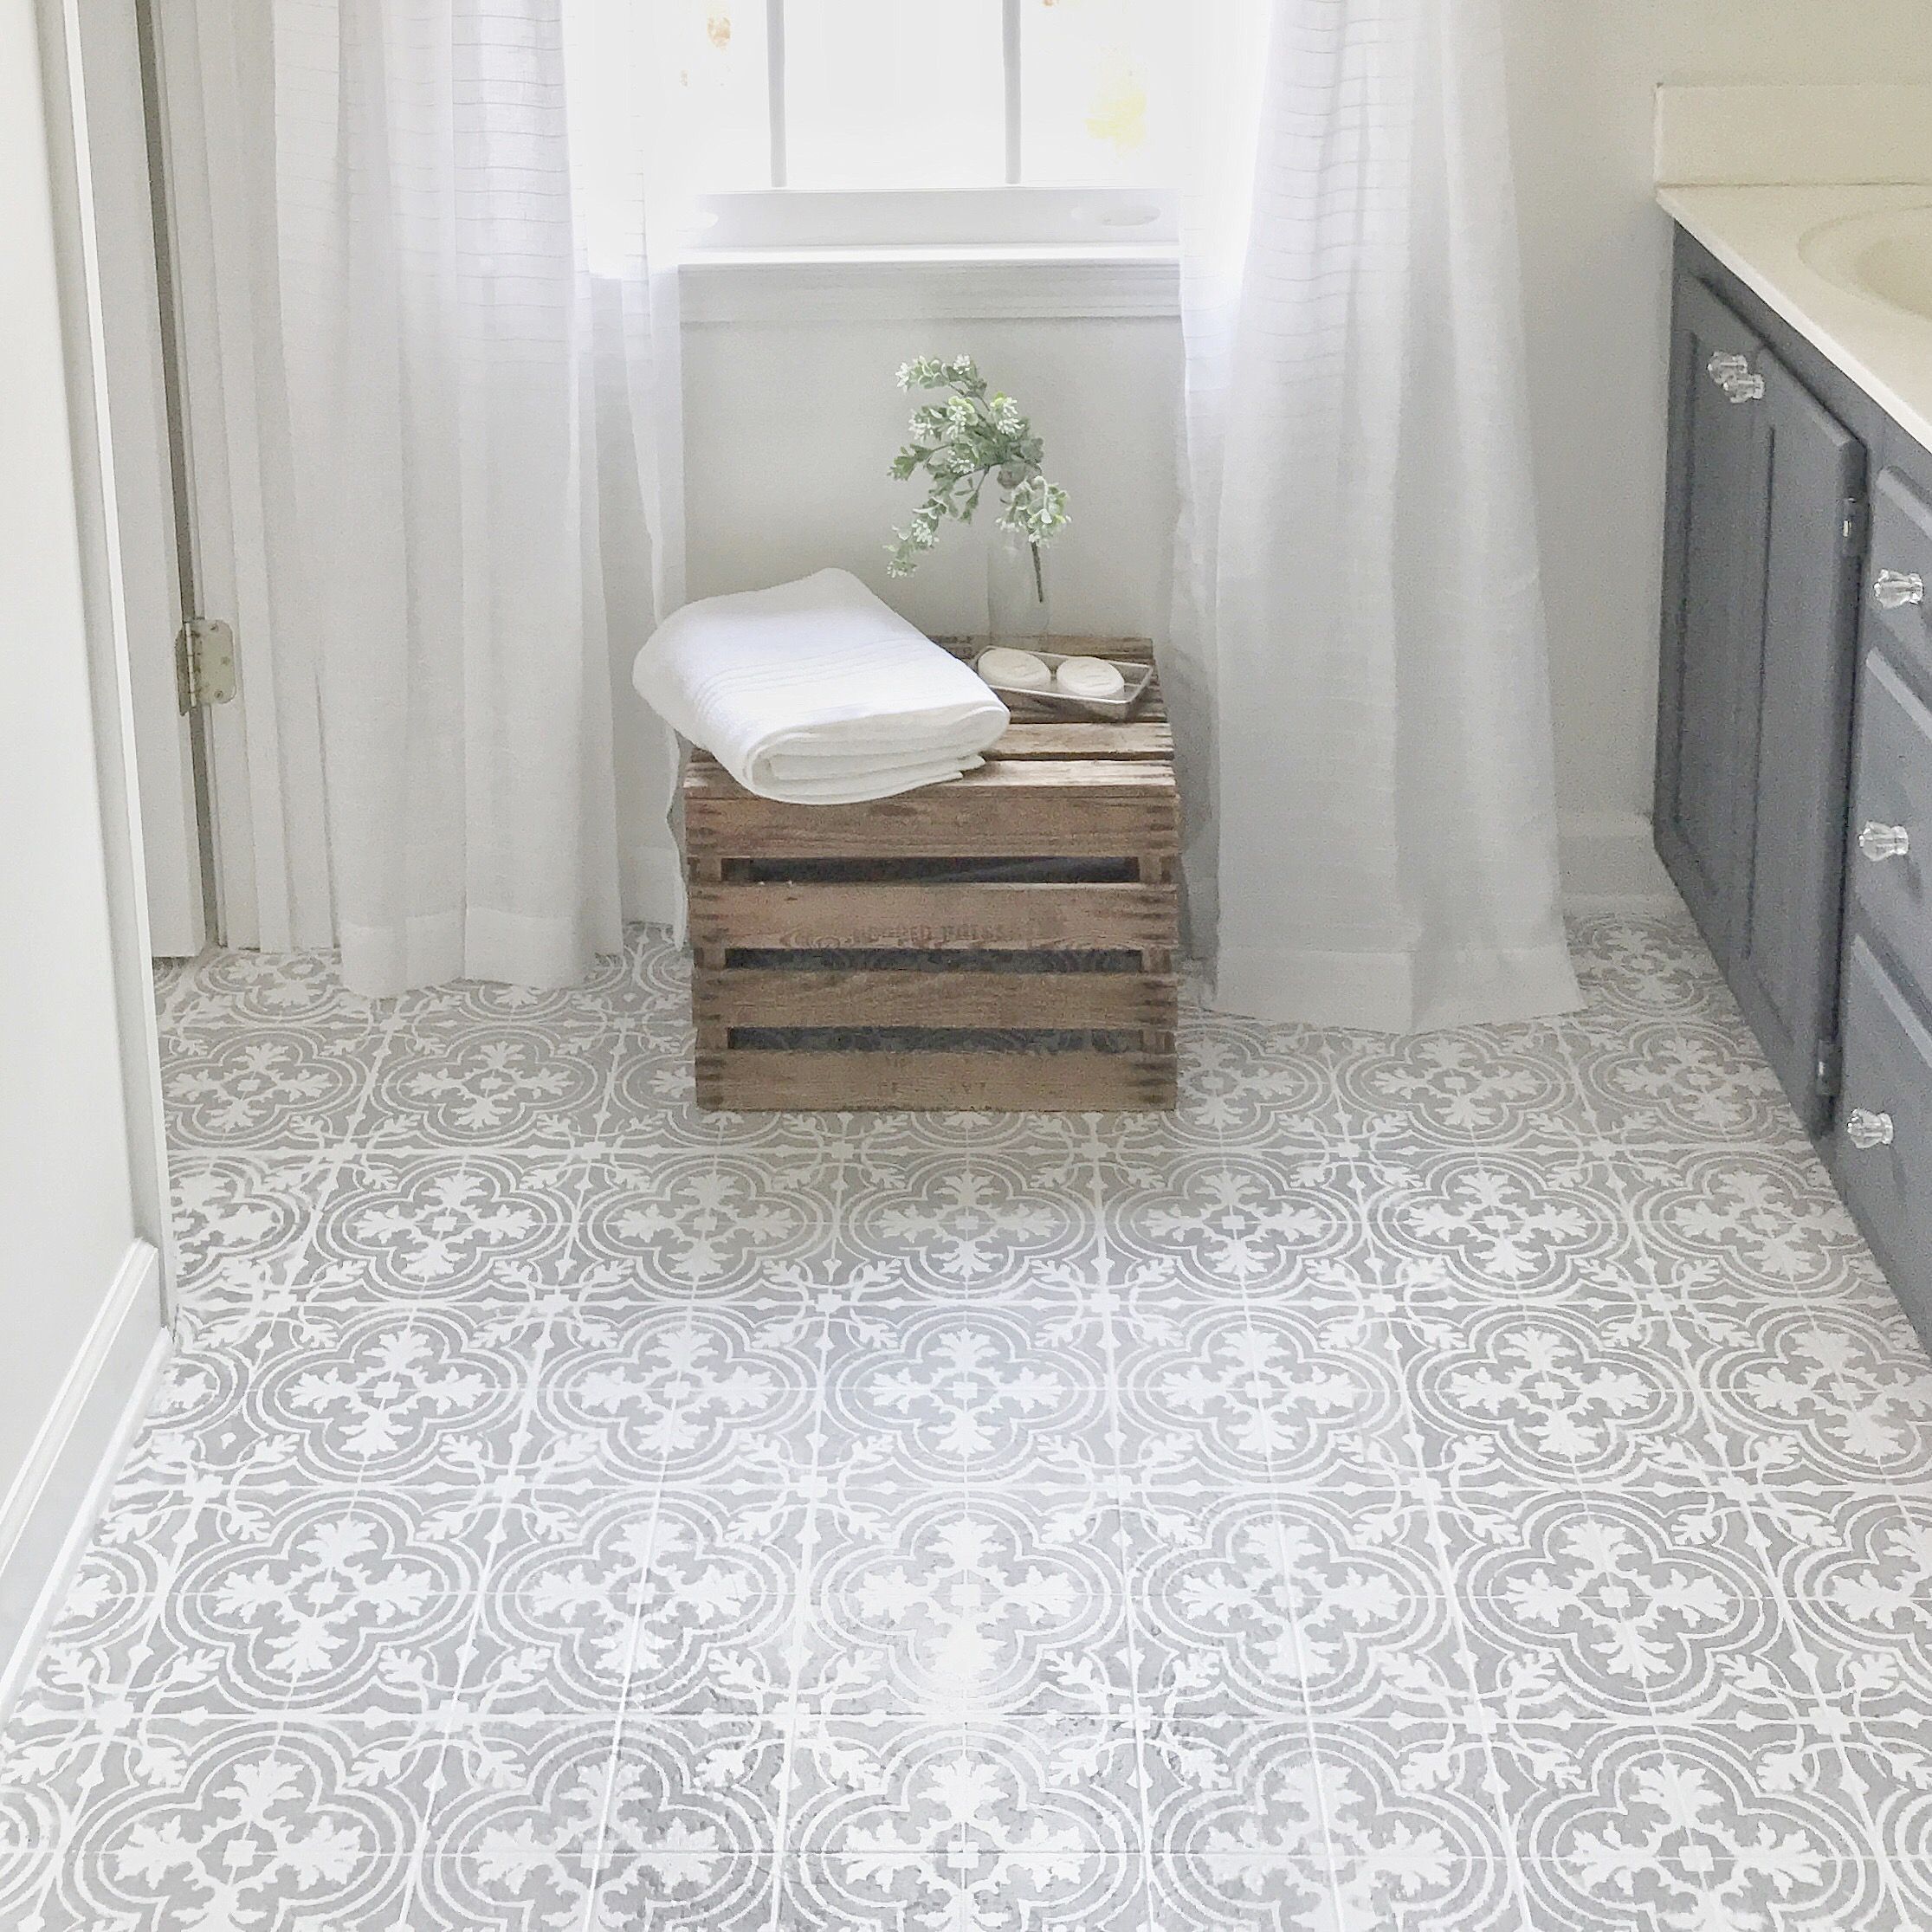 How to Paint Your Linoleum or Tile Floors to Look Like